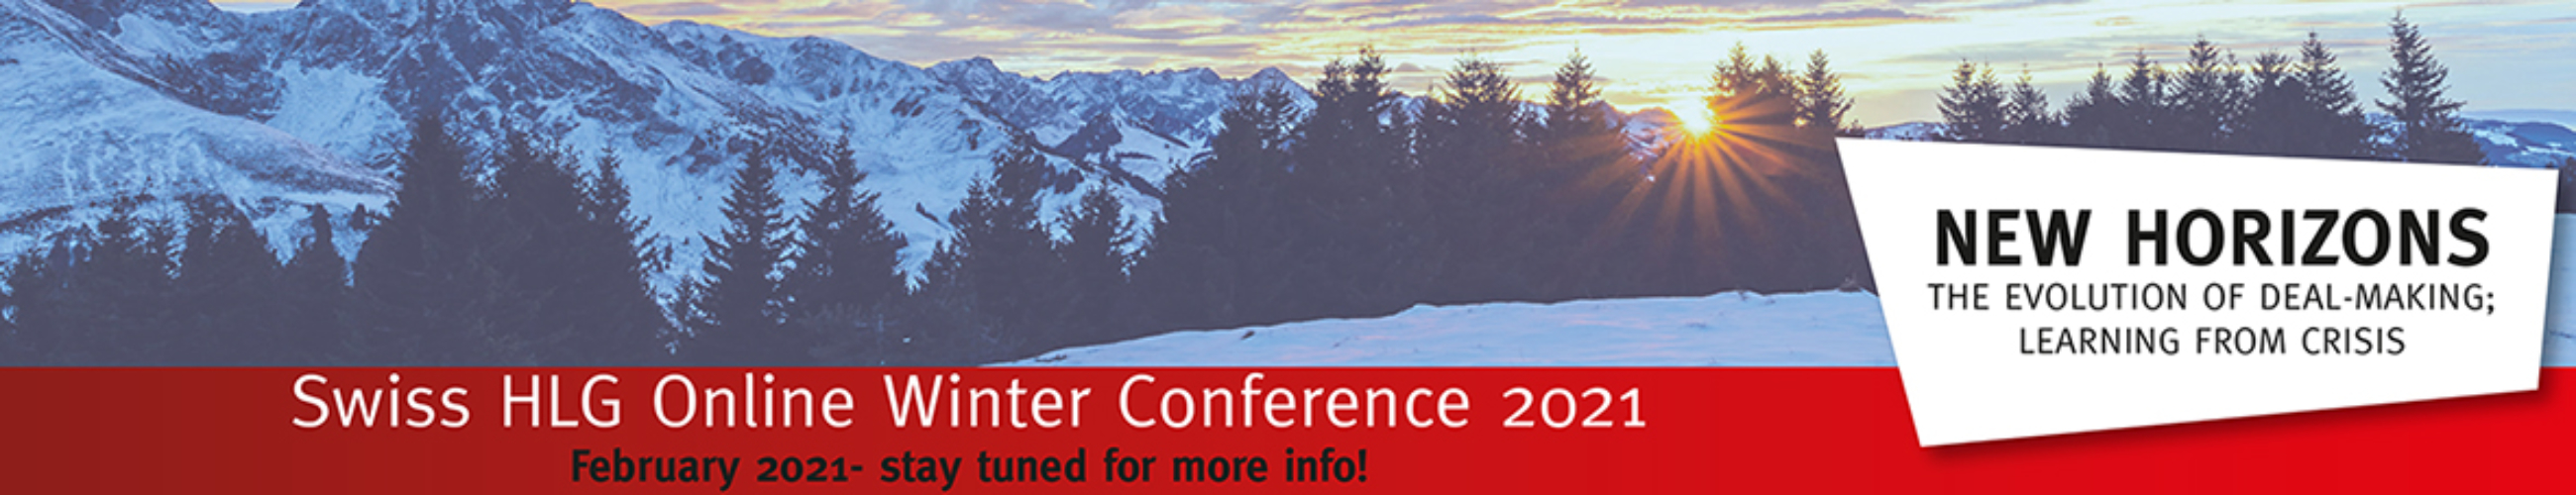 3 Online Winter Conference Swiss HLG 2 Slider 2 small